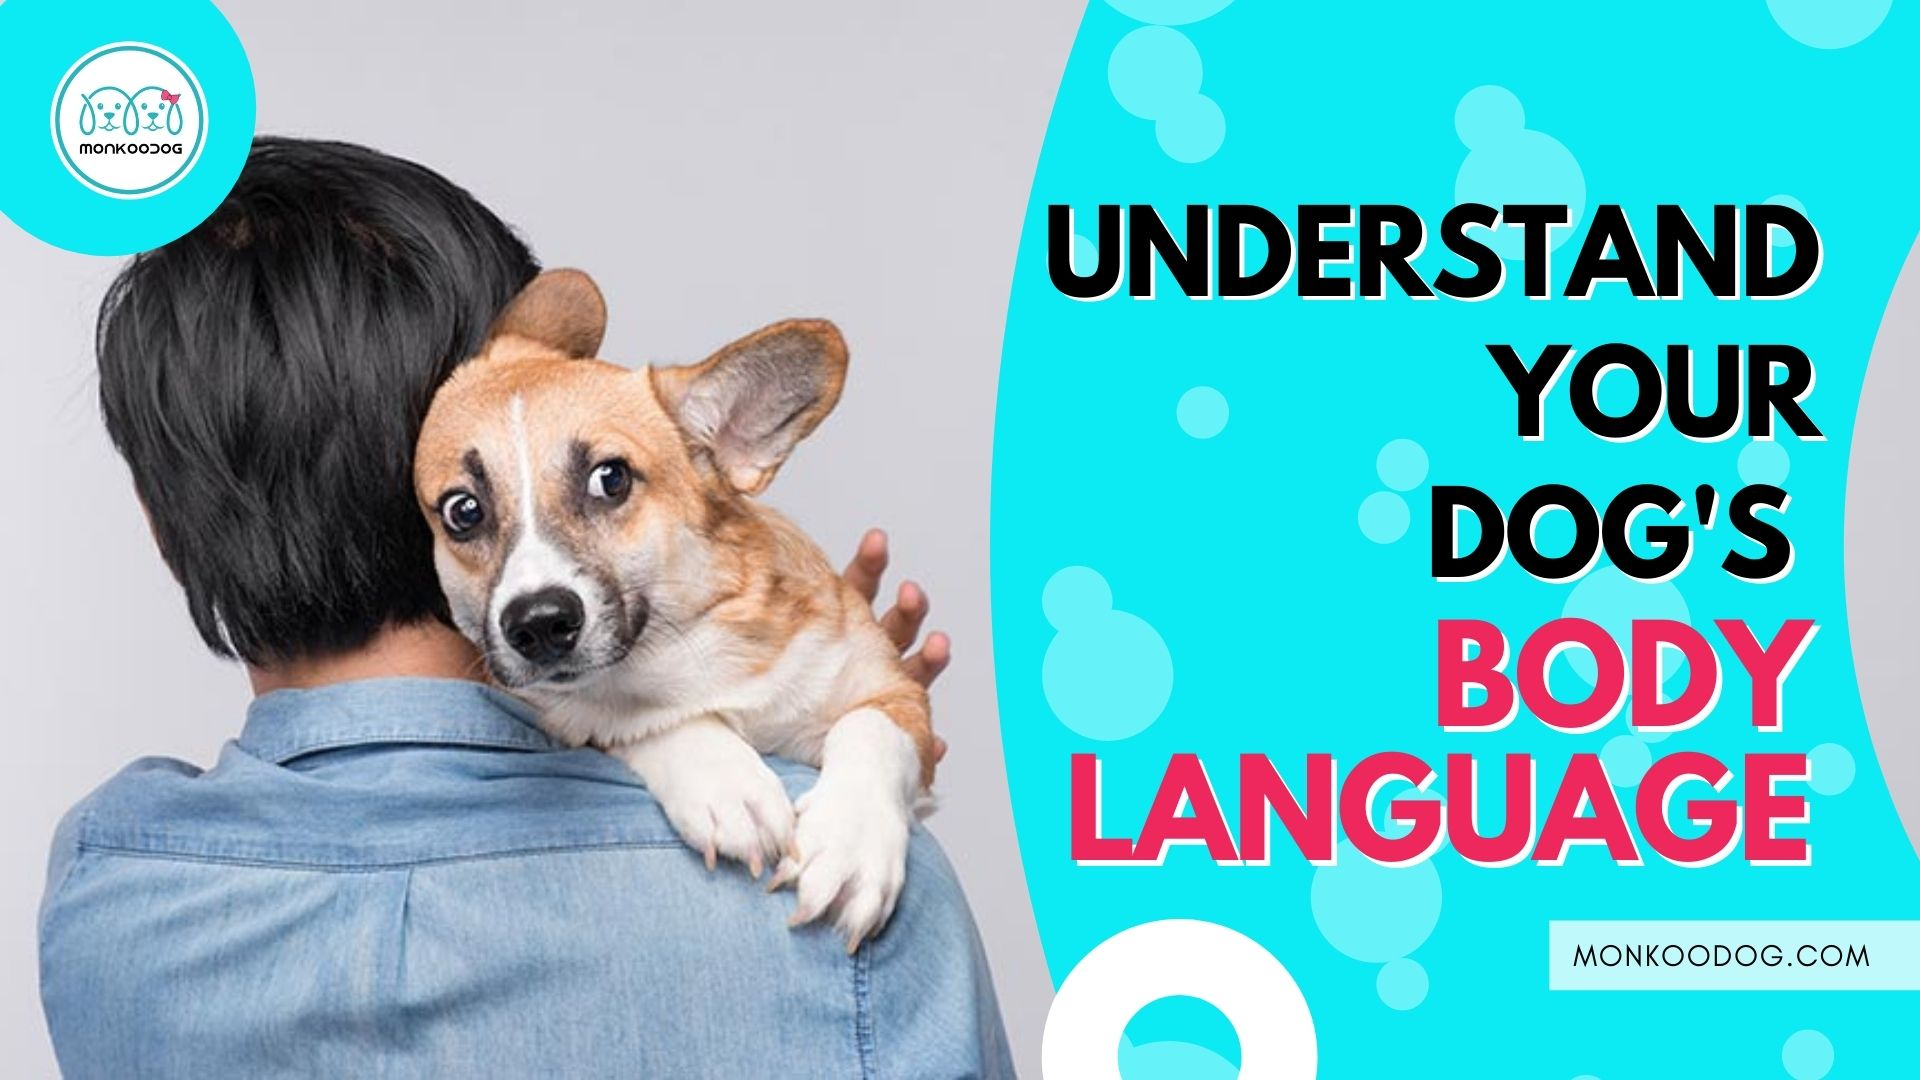 How to Understand Your Dog's Body Language